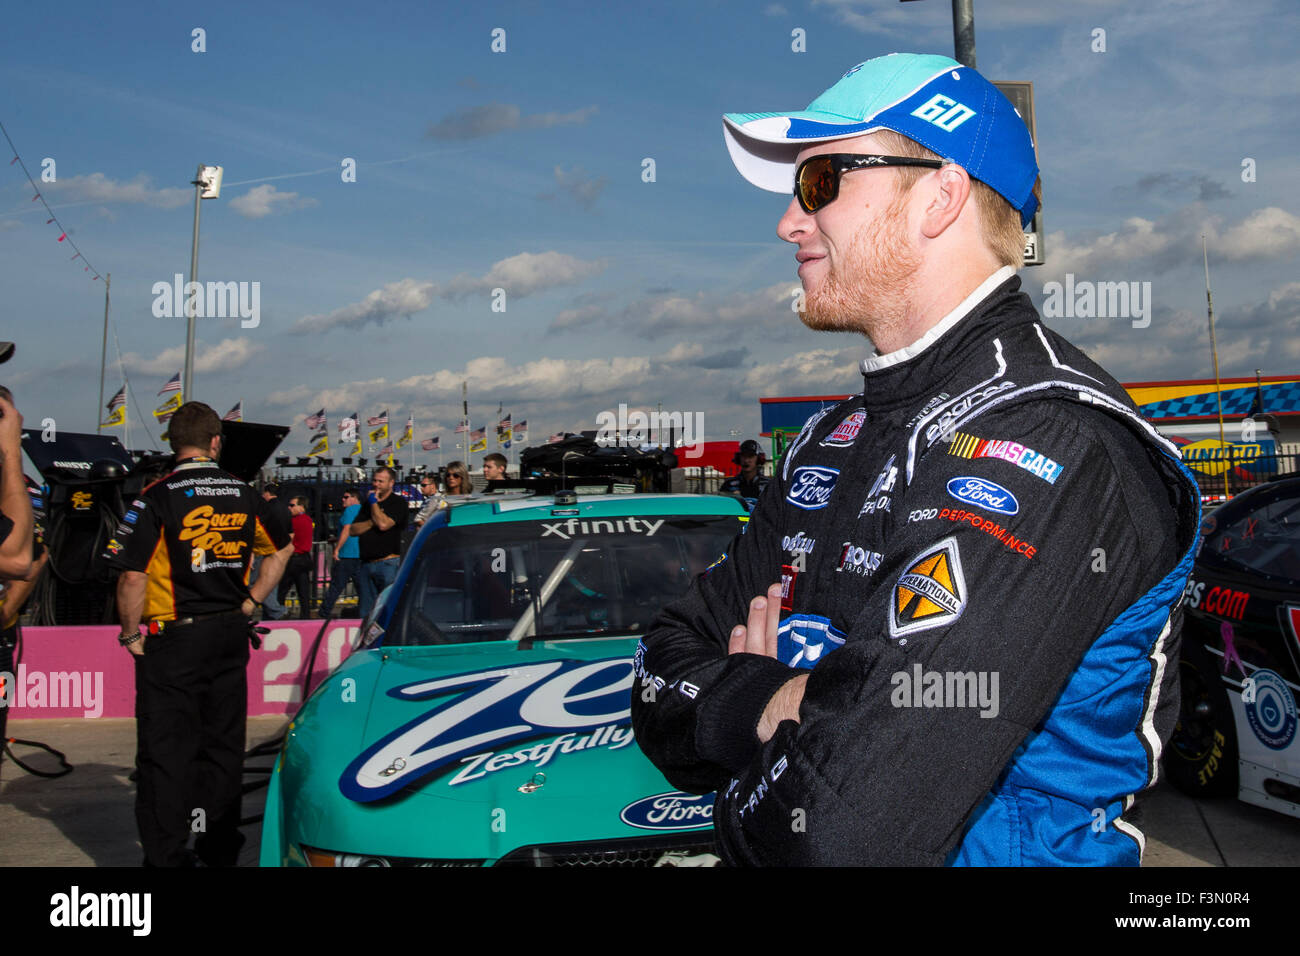 Concord, NC, USA. 9th Oct, 2015. Concord, NC - Oct 09, 2015: The NASCAR Xfinity Series teams take to the track for - Stock Image